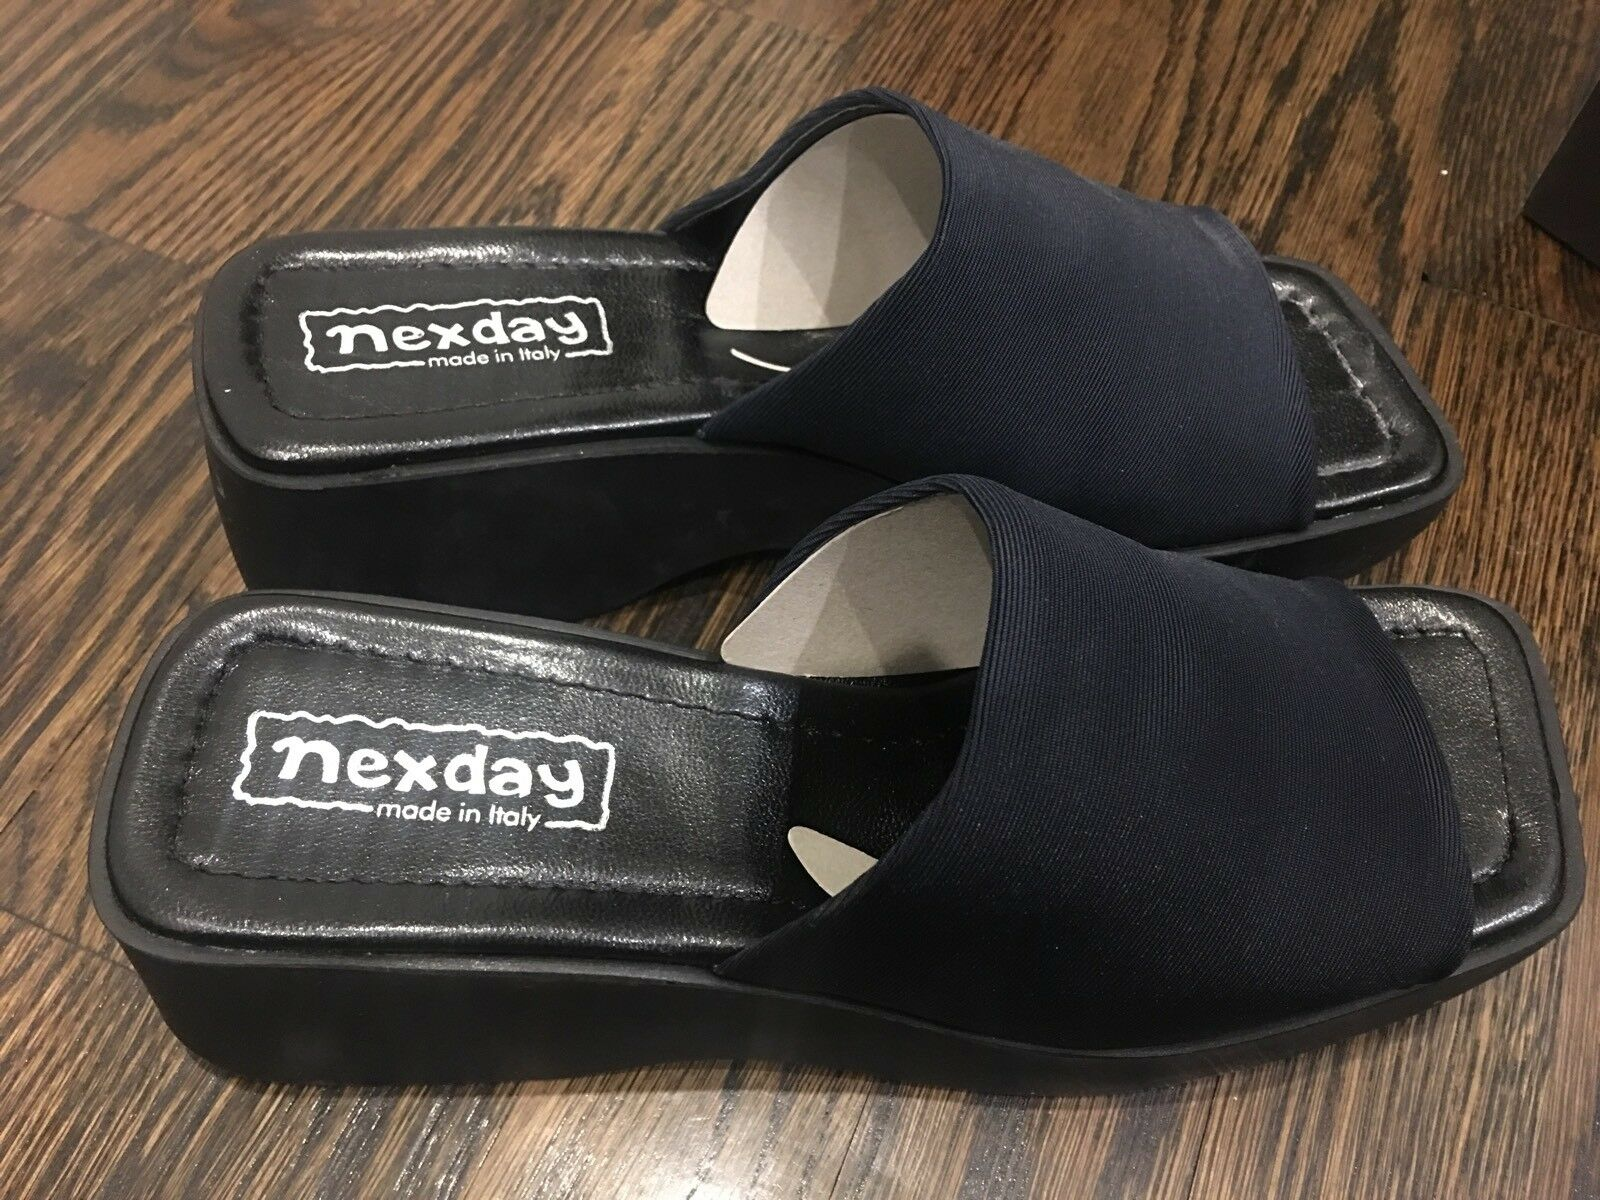 New In Box NEXDAY Womens shoes made in    Wedge Heel Slides size 8 Navy bluee 22c9ec